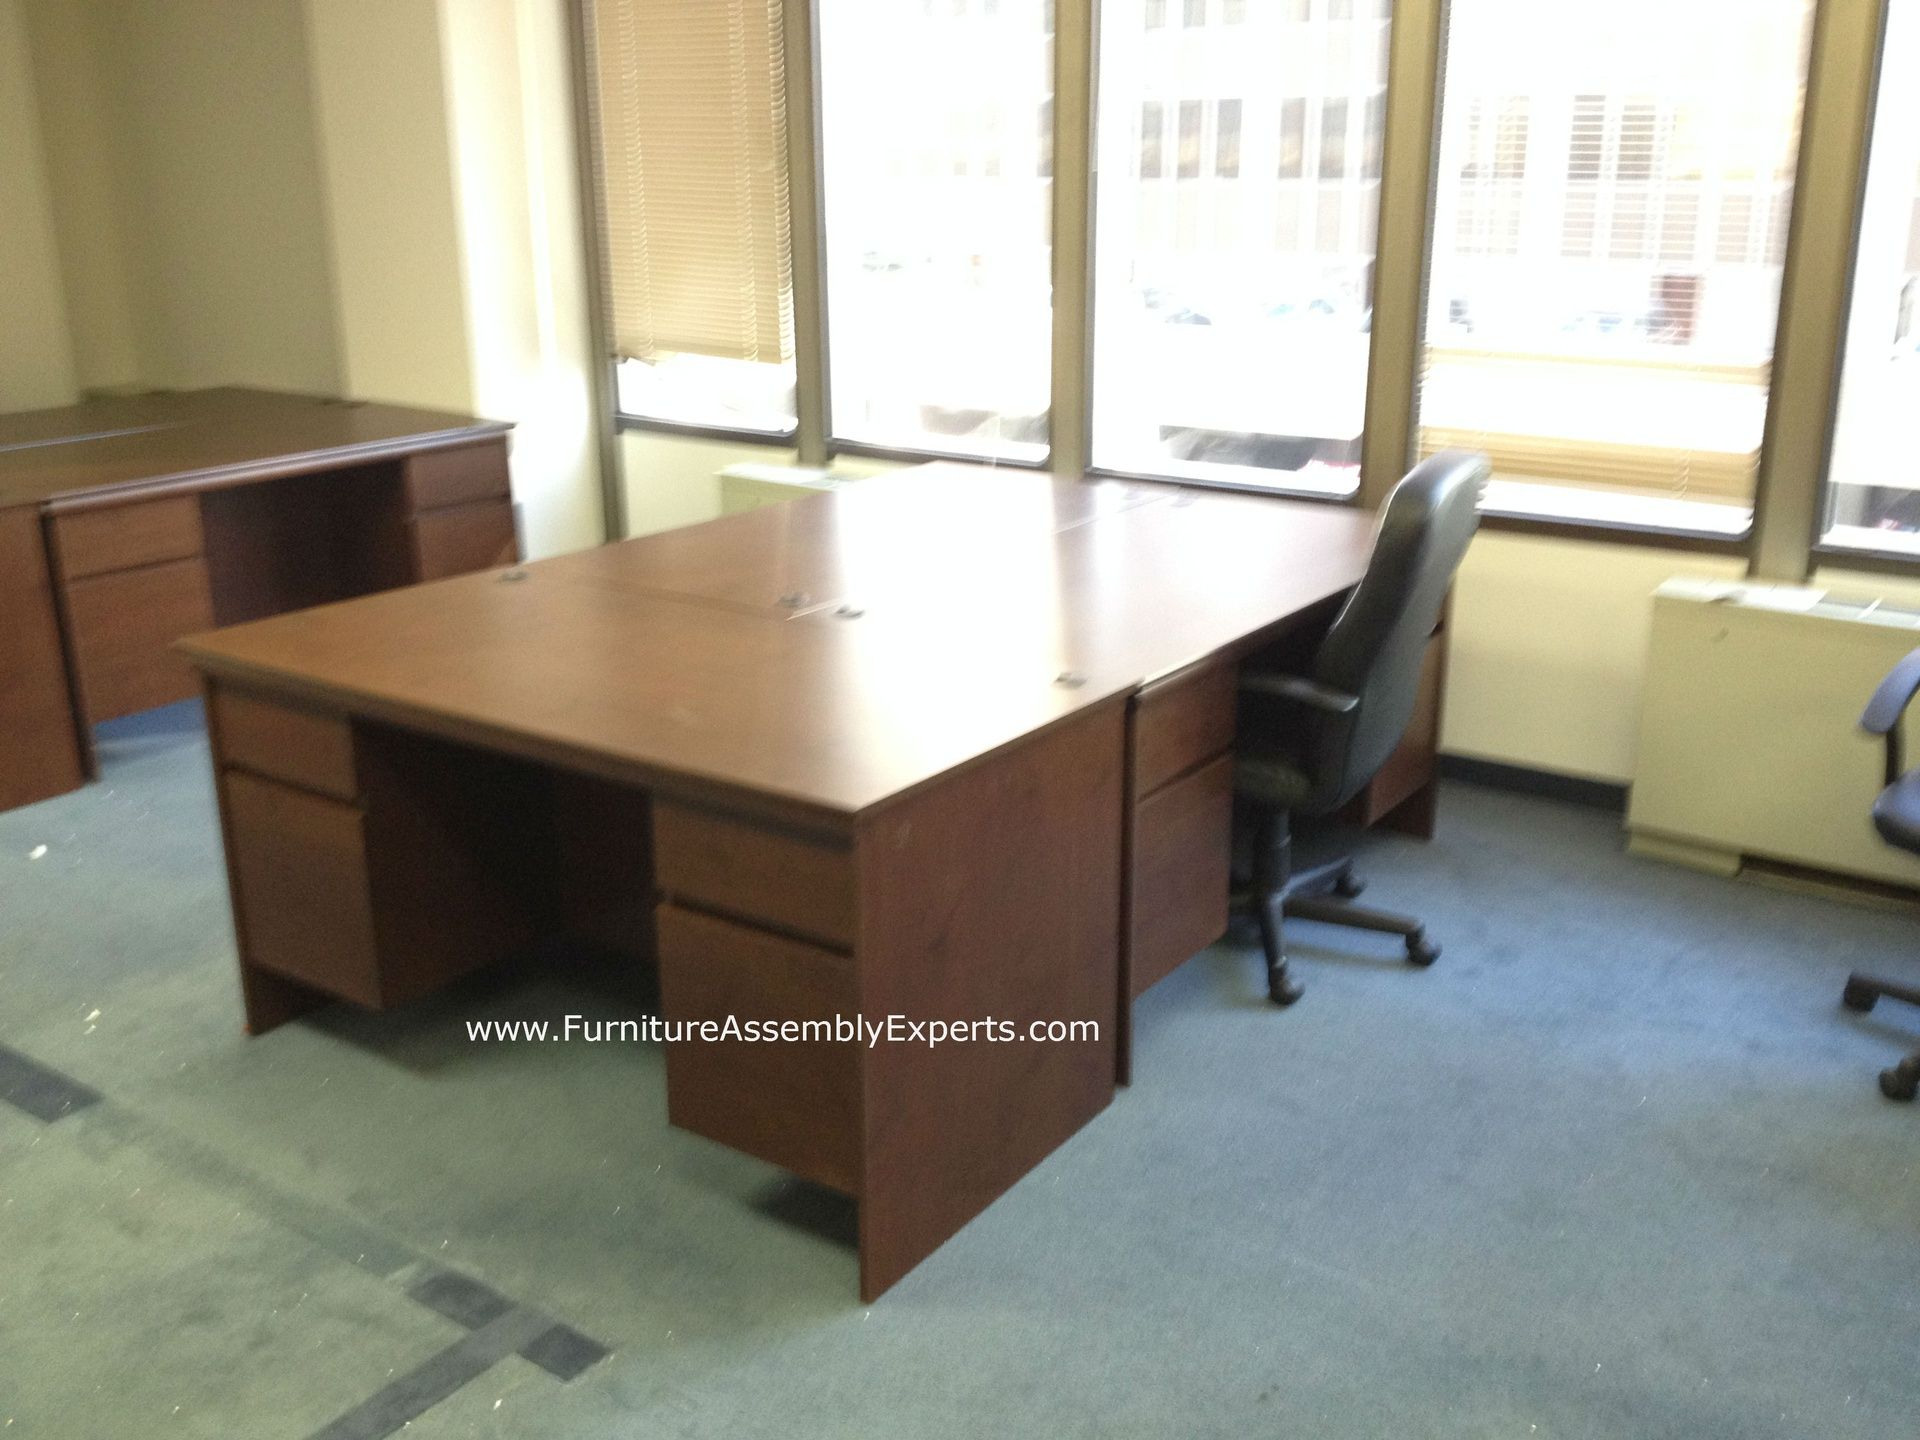 Ameriwood Tiverton Executive Desk American Freight Living Room Set Check More At Http